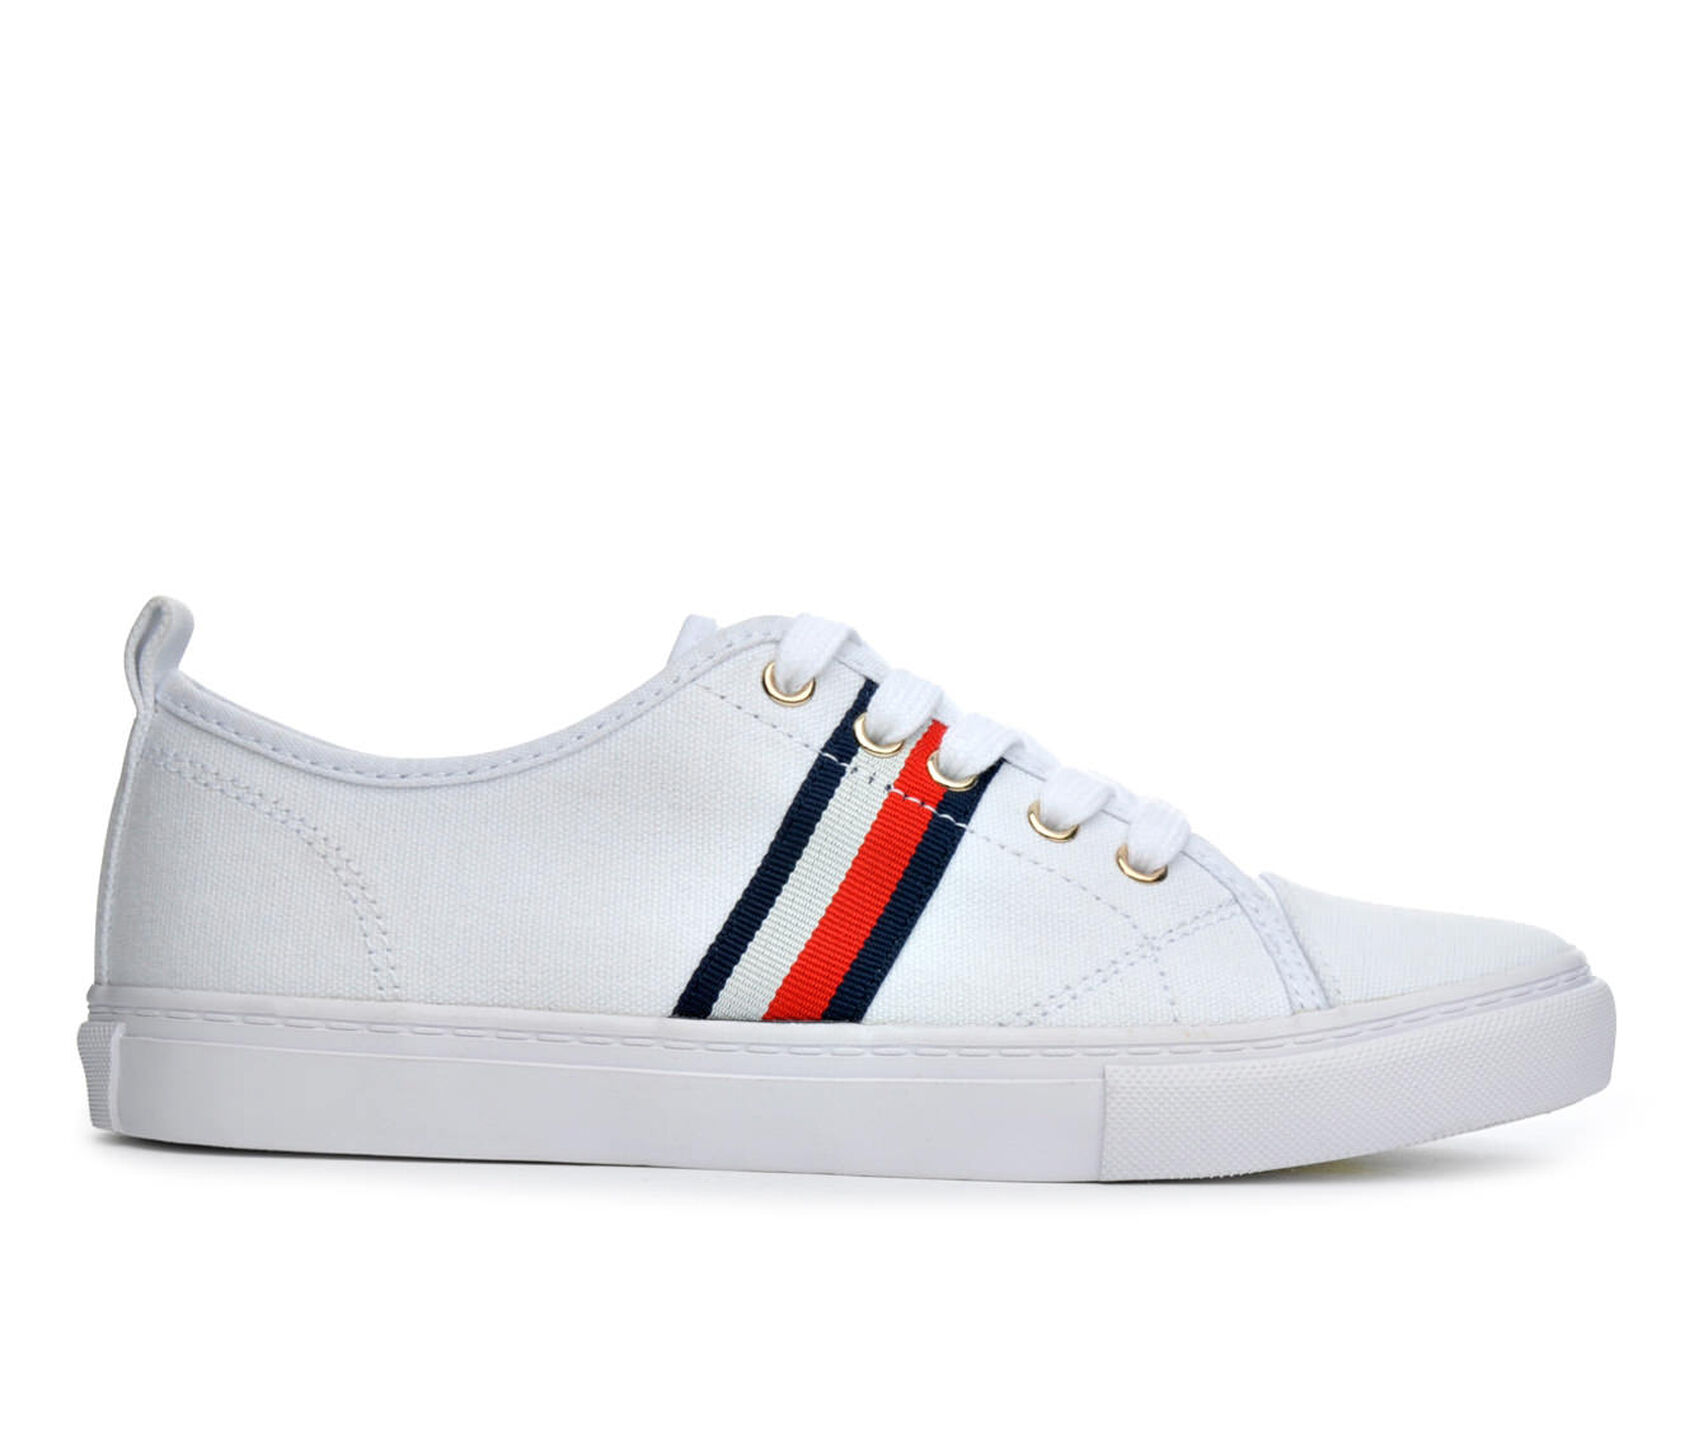 Womens tommy hilfiger lancer sneakers images publicscrutiny Images